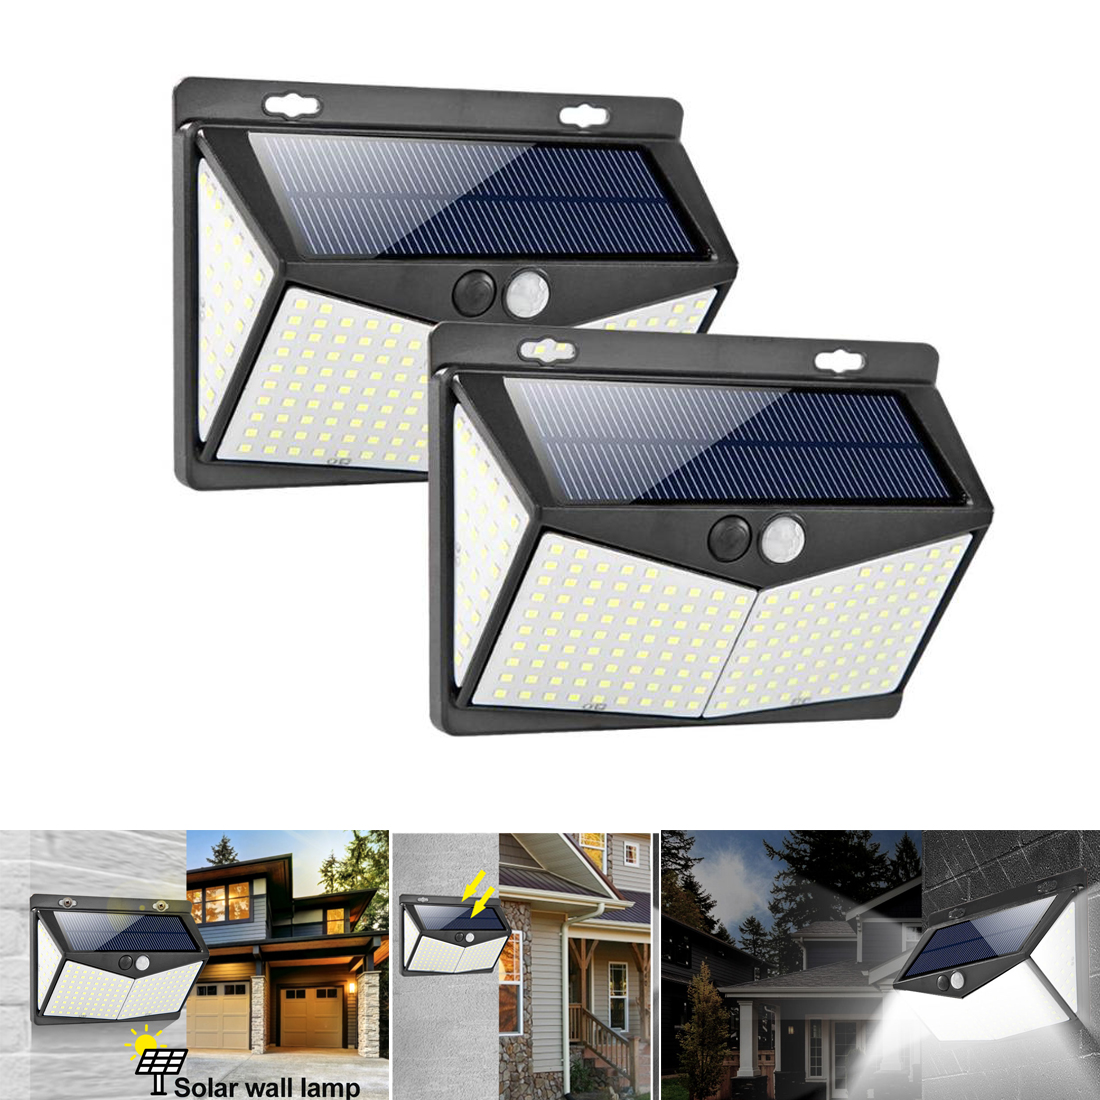 208LED Solar Light Outdoor Solar Lamp PIR Motion Sensor Wall LED Light Waterproof Solar Powered Sunlight For Garden Decoration